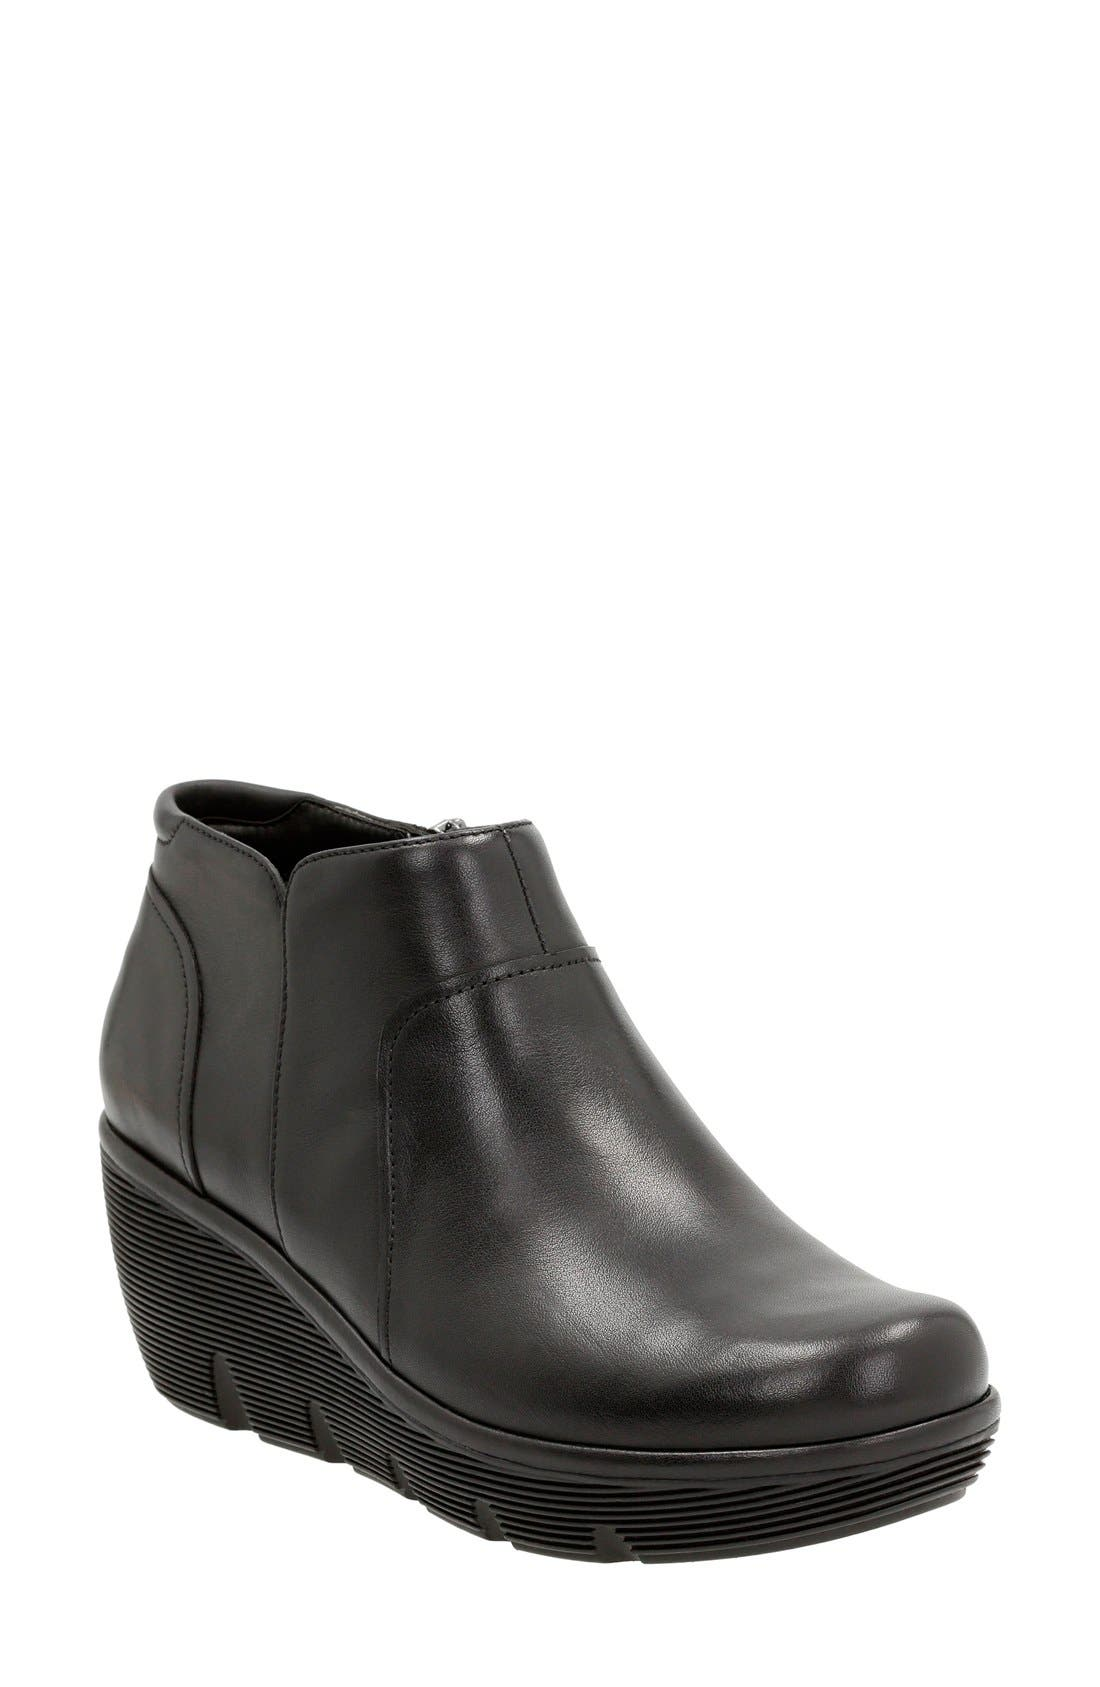 'Clarene Sun' Wedge Boot,                         Main,                         color, Black Leather